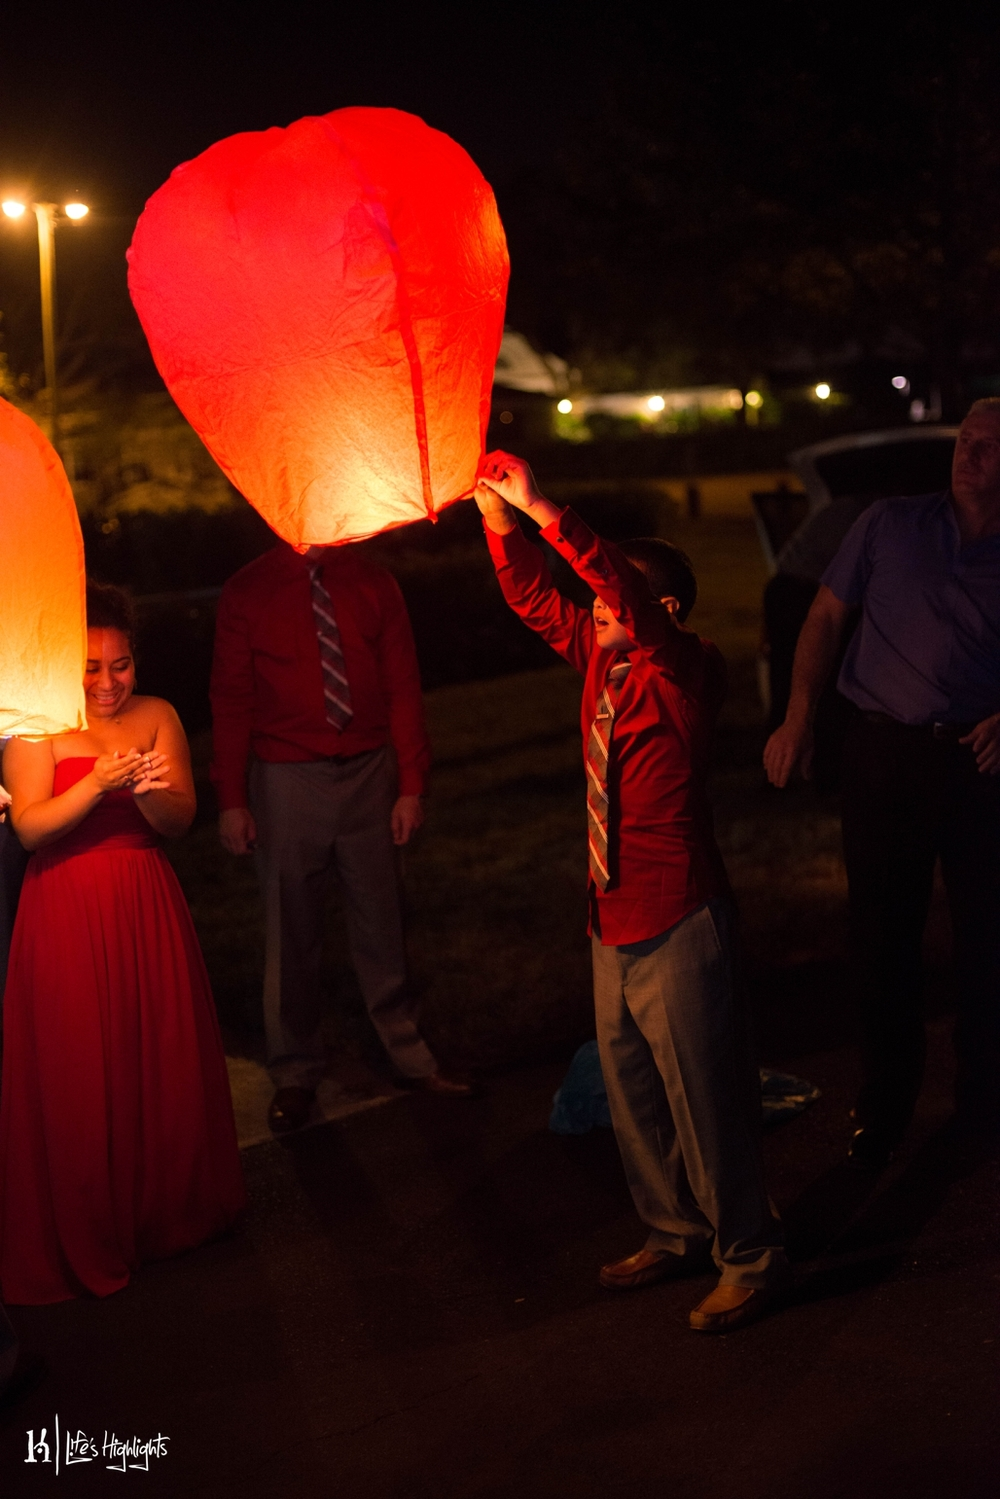 Guests released sky lanterns into the night sky as a symbol of well wishes for the bride and groom